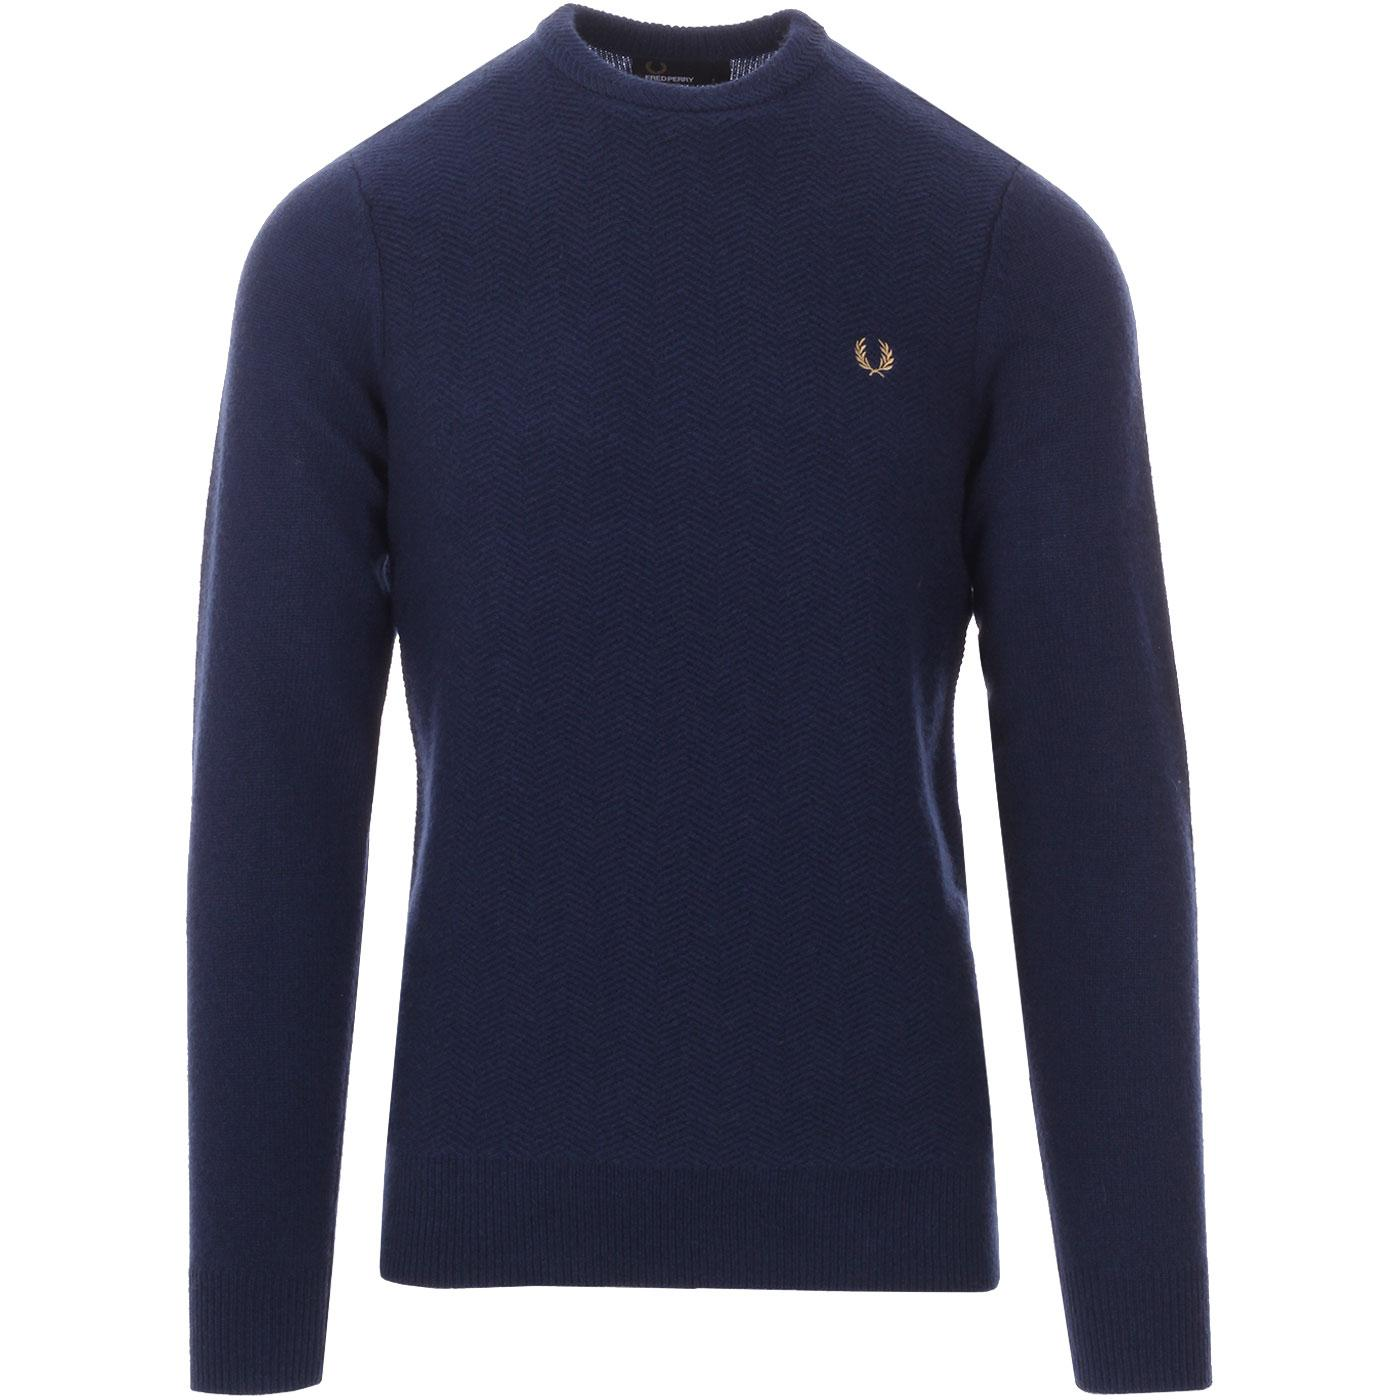 FRED PERRY Men's Chevron Texture Knitted Jumper SB